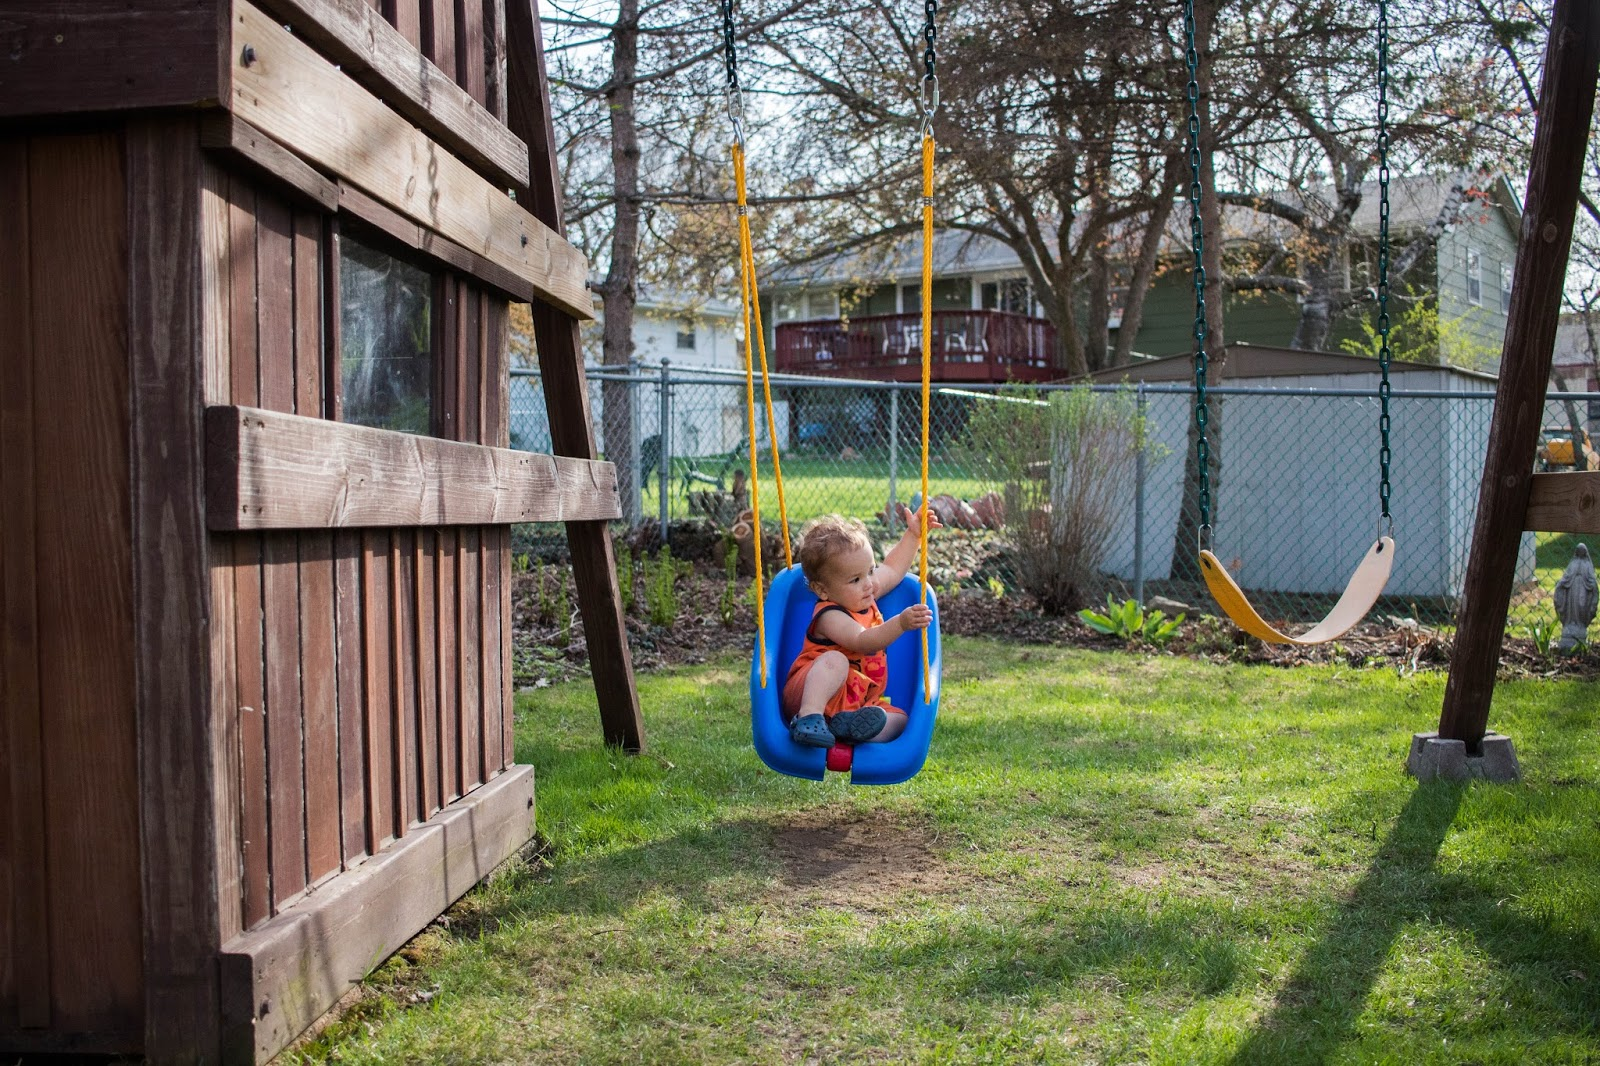 A low accessible swing for toddlers in our Montessori outdoor space.